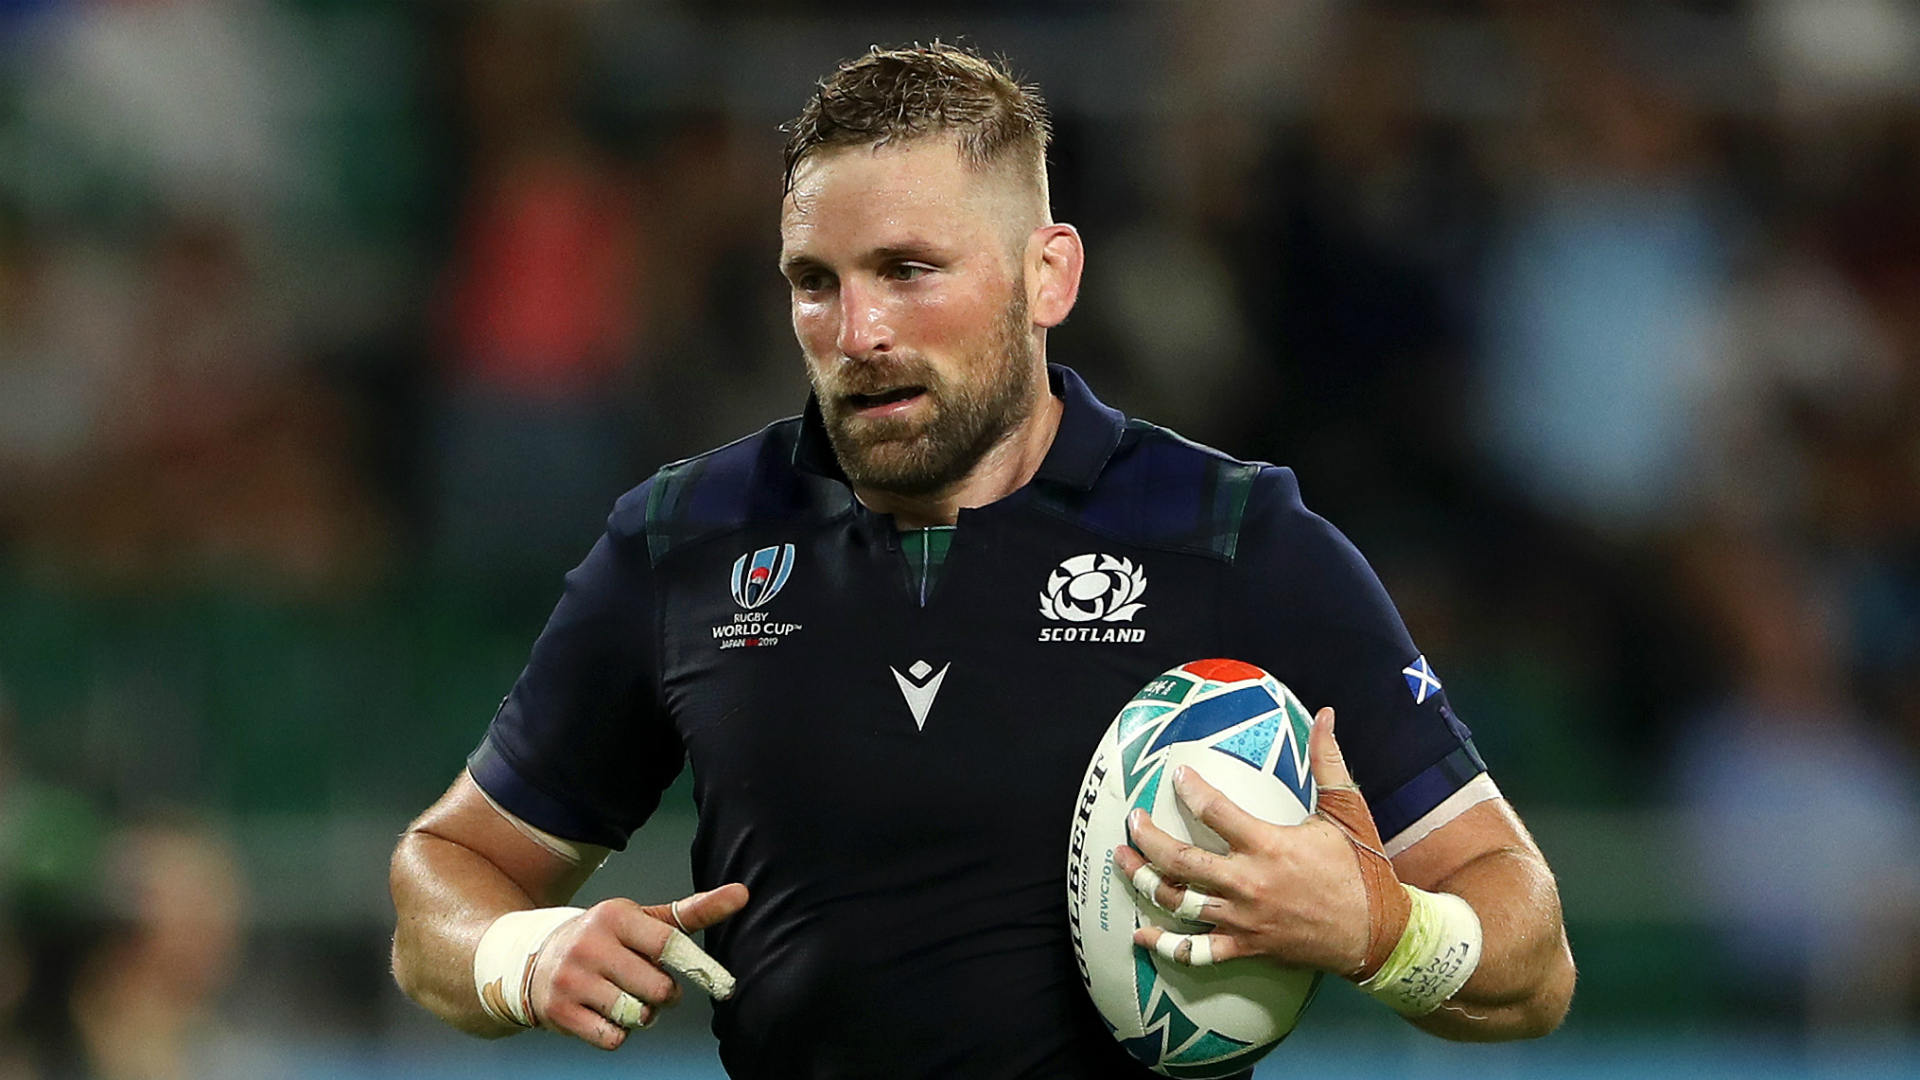 John Barclay steps down from Scotland duty